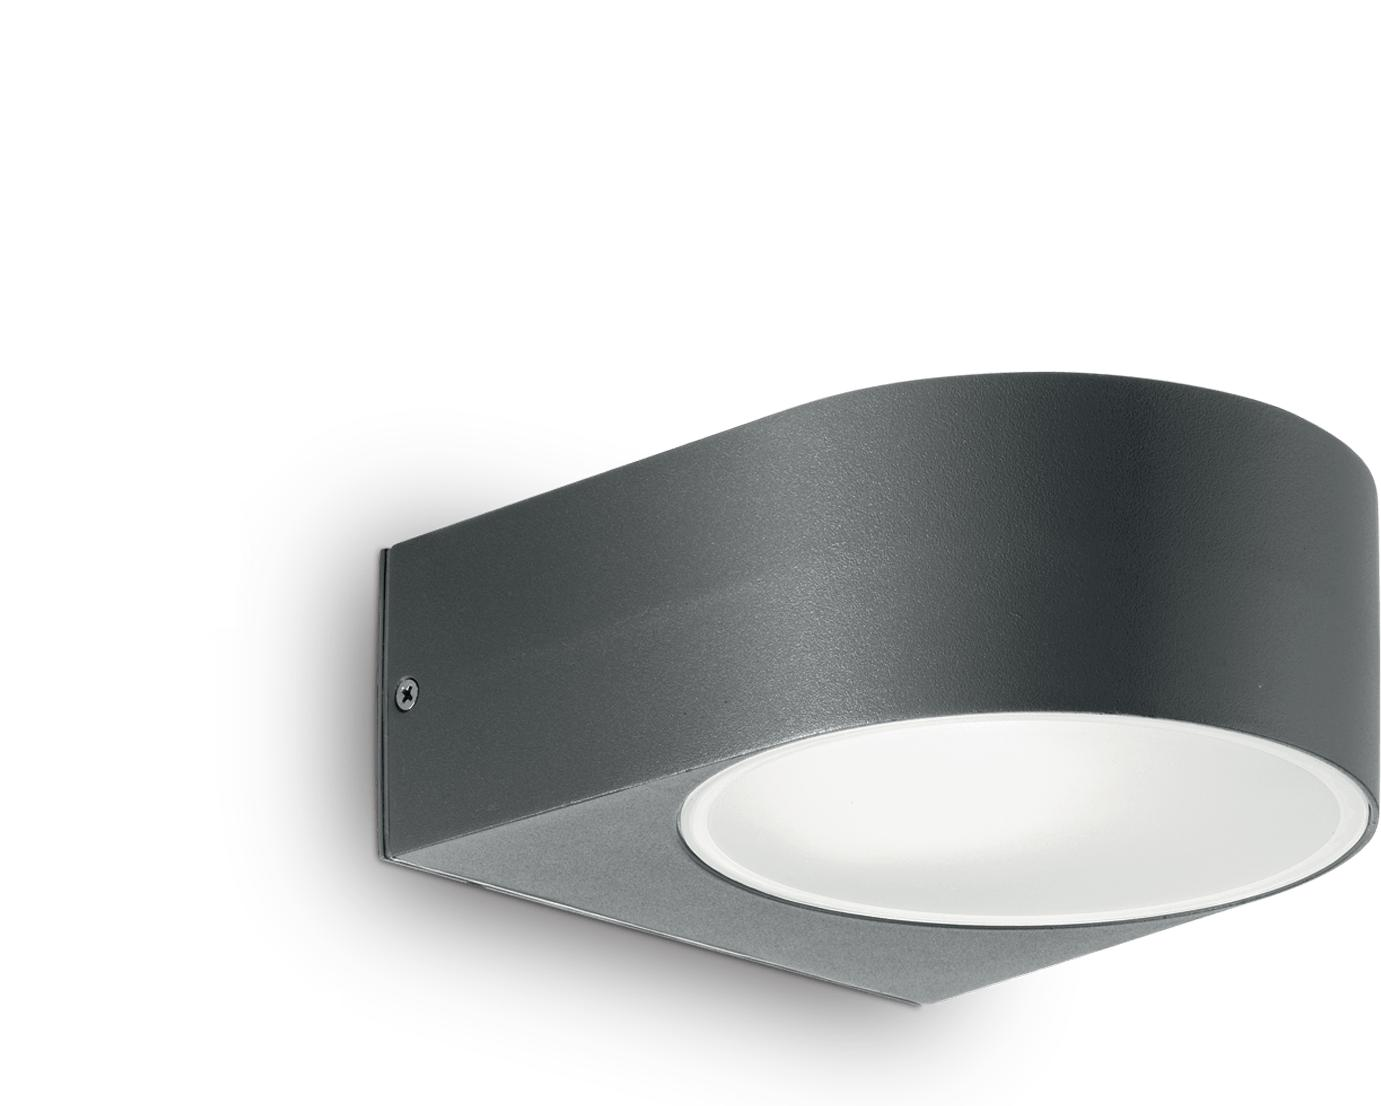 Ideal lux LED iko ap1 antracite Wandleuchte 5W 18515